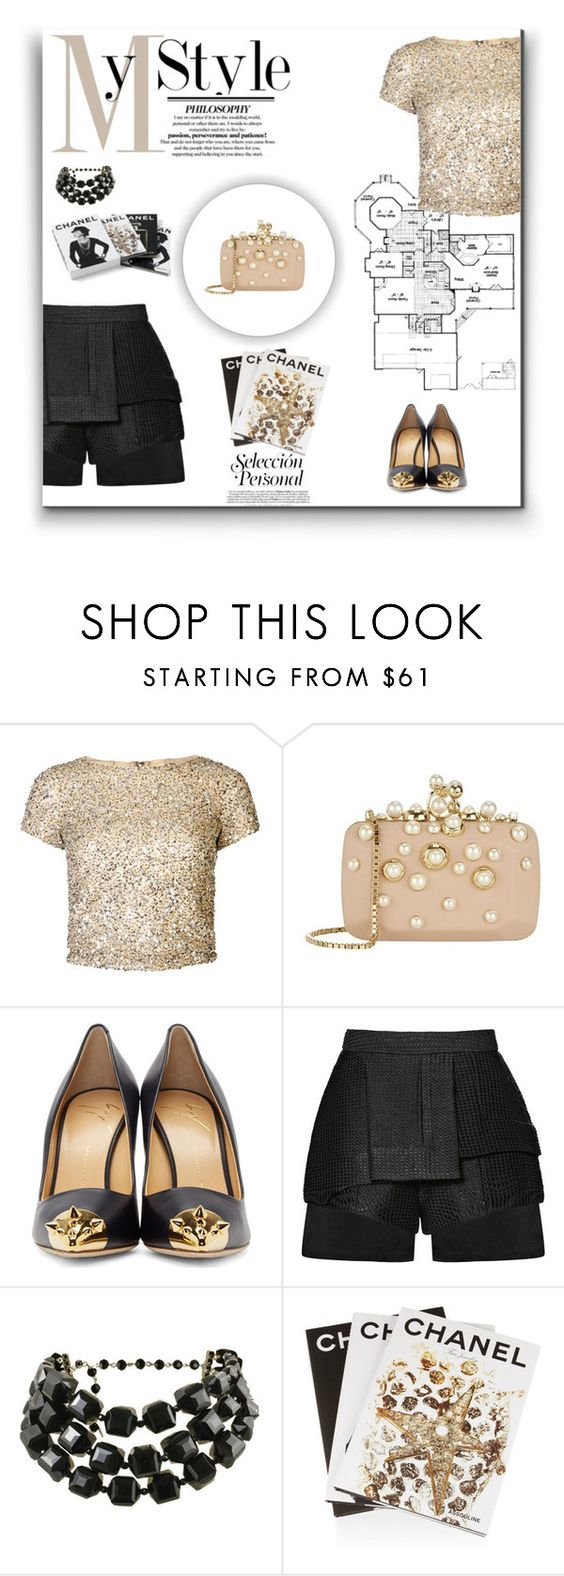 """""""My Style"""" by ch-swisss ❤ liked on Polyvore featuring Alice + Olivia, Elie Saab, Giuseppe Zanotti, E L L E R Y, Tarina Tarantino, Assouline Publishing and Chanel"""